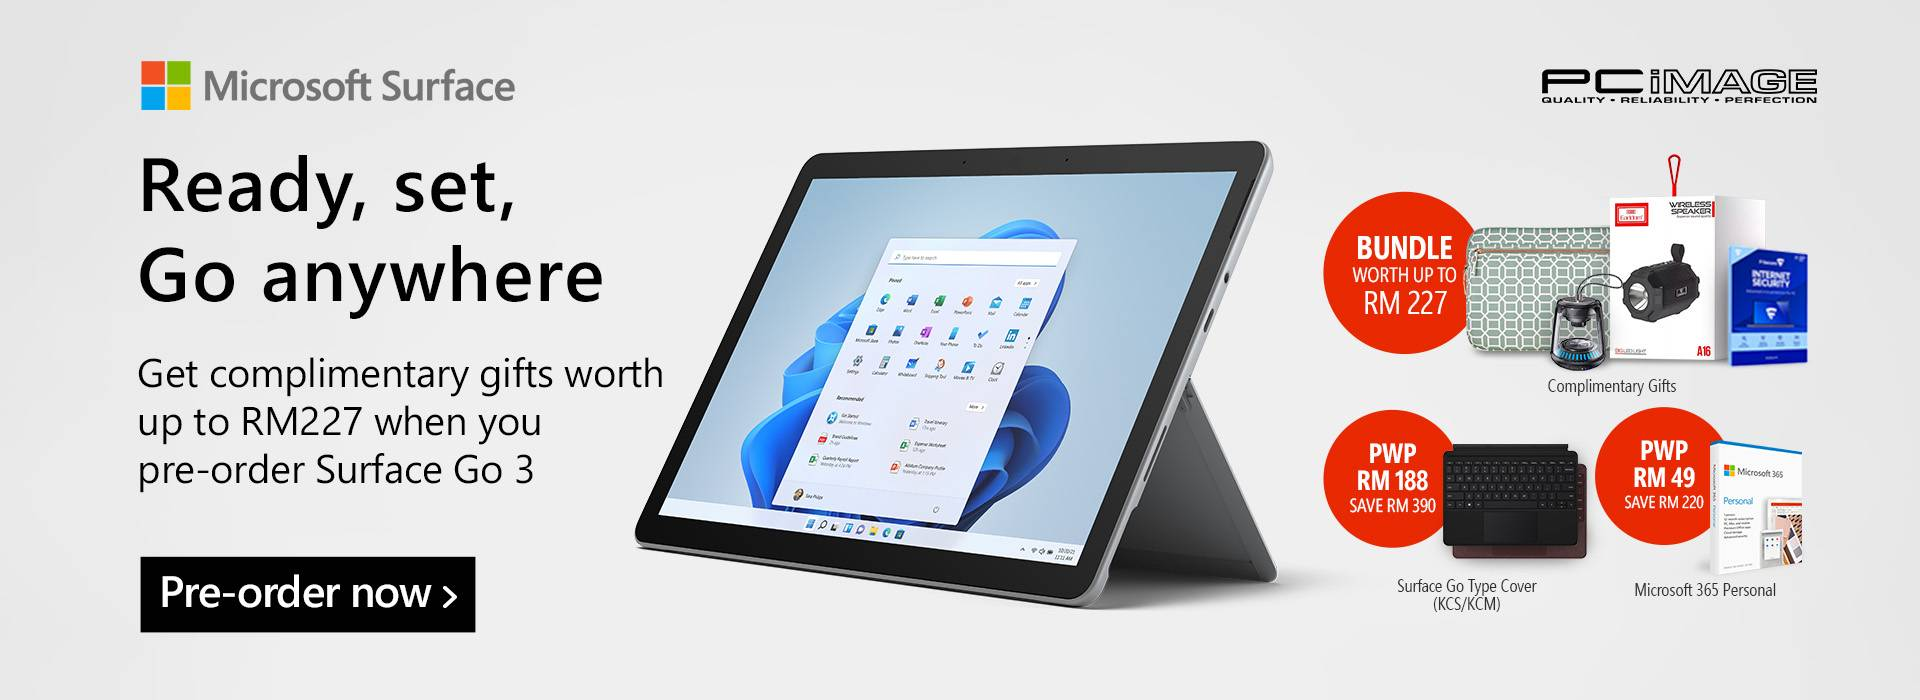 Surface Go 3 Pre-Order 5 Oct